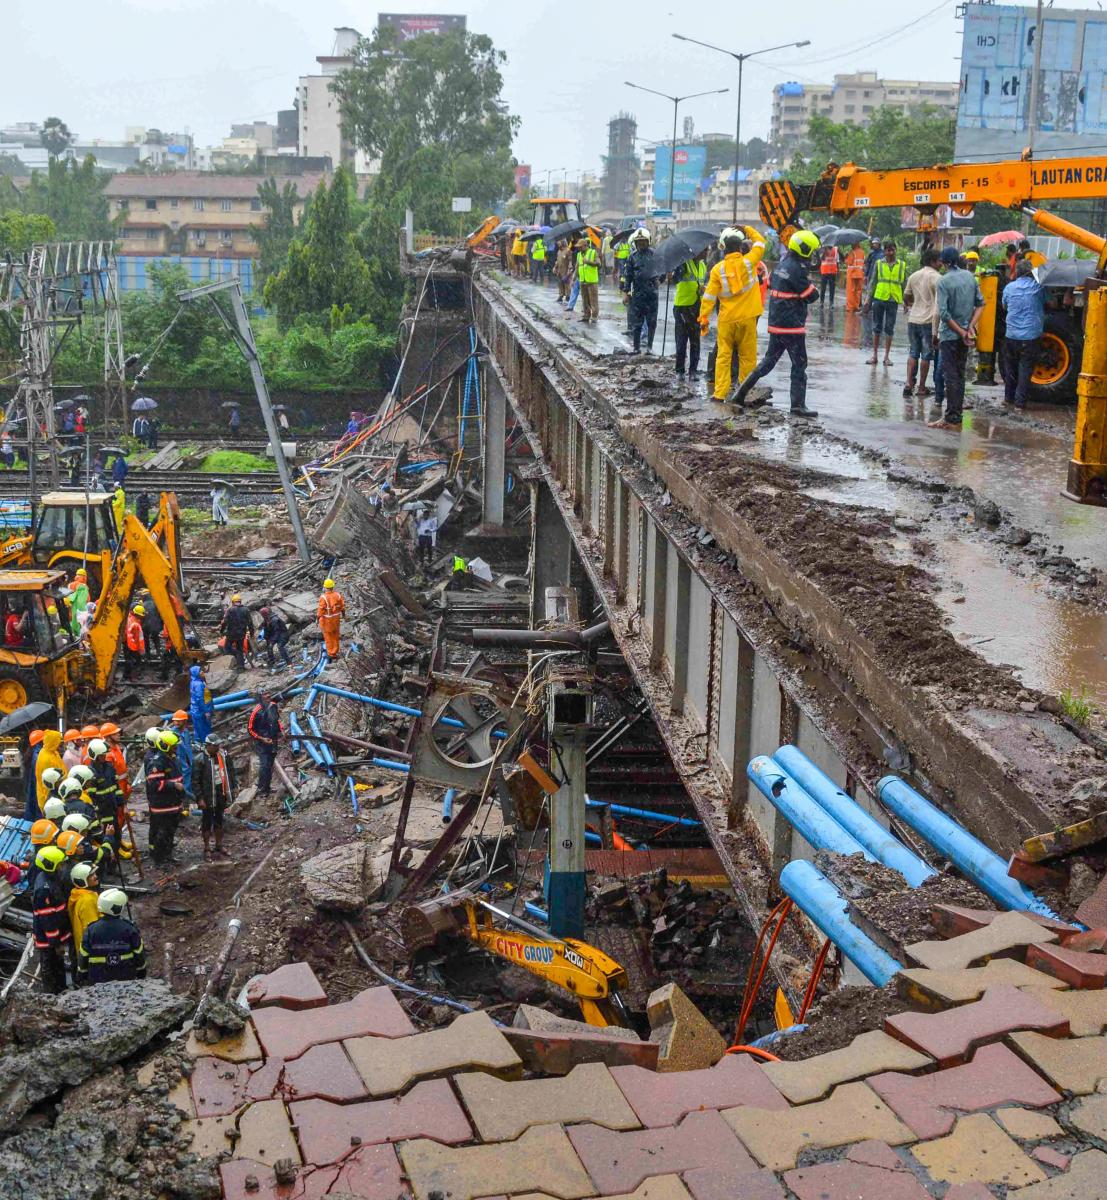 Rescue and relief work underway after a foot overbridge collapsed on the railway tracks following heavy rains, at Andheri Station in Mumbai. PTI photo